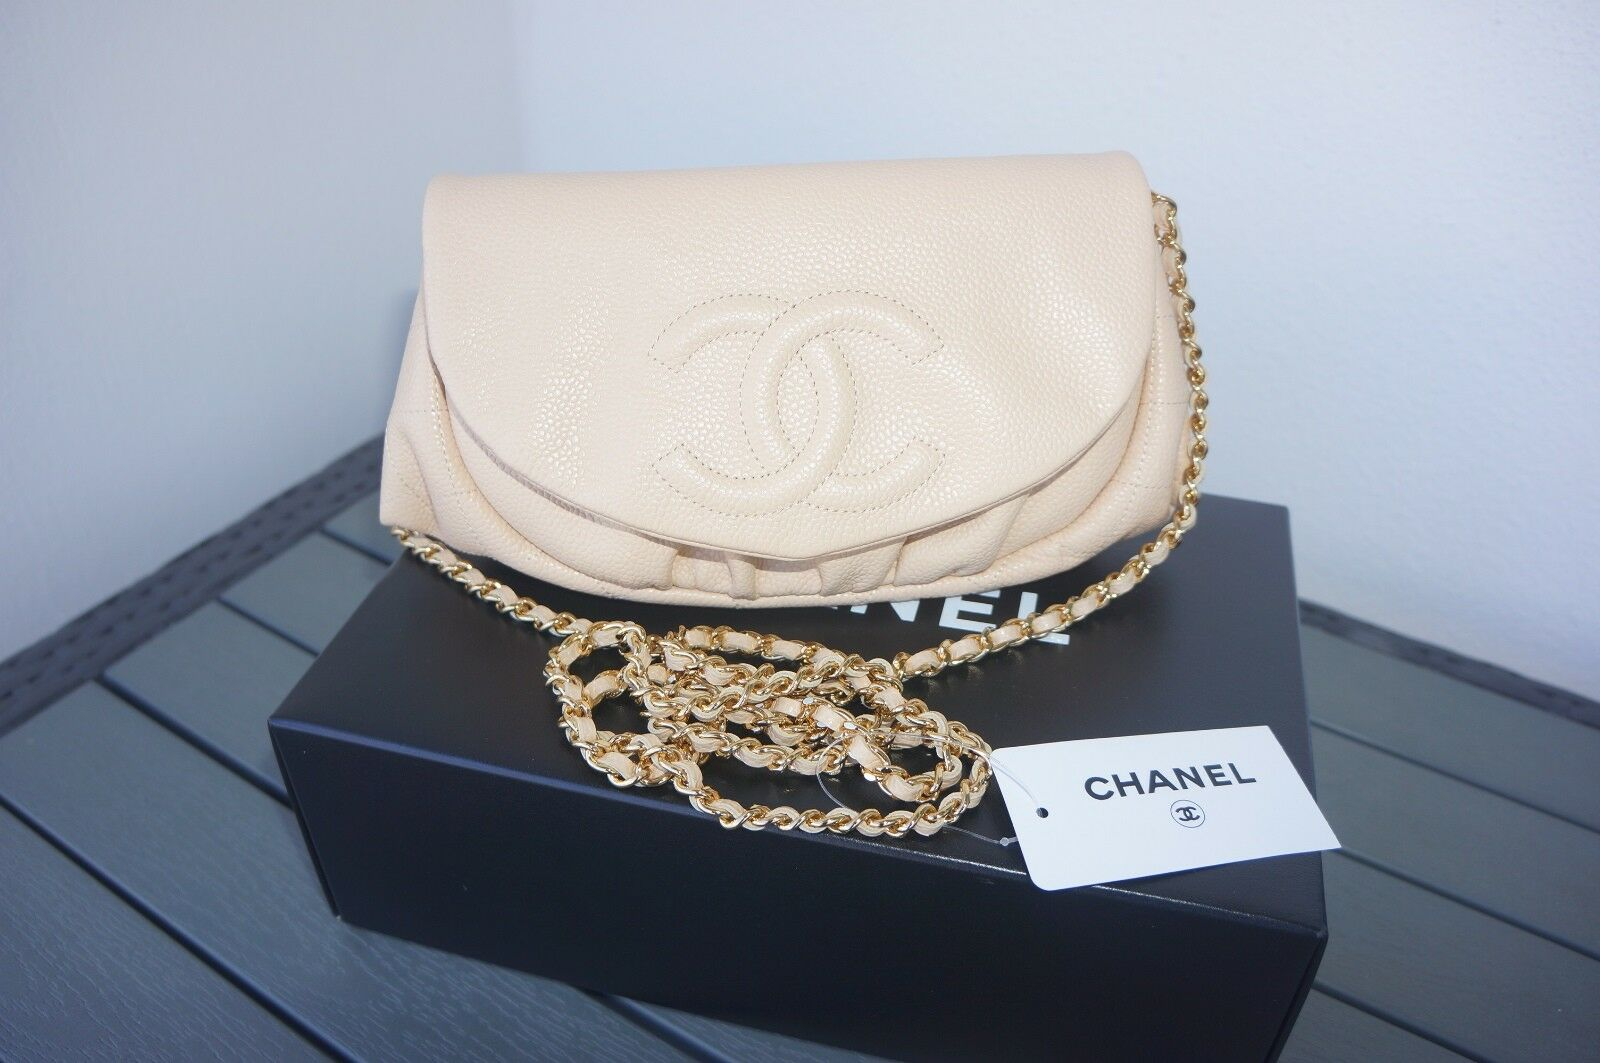 CHANEL Beige Caviar Leather GHW Wallet on Chain WOC for sale online ... 95a1c6af31278